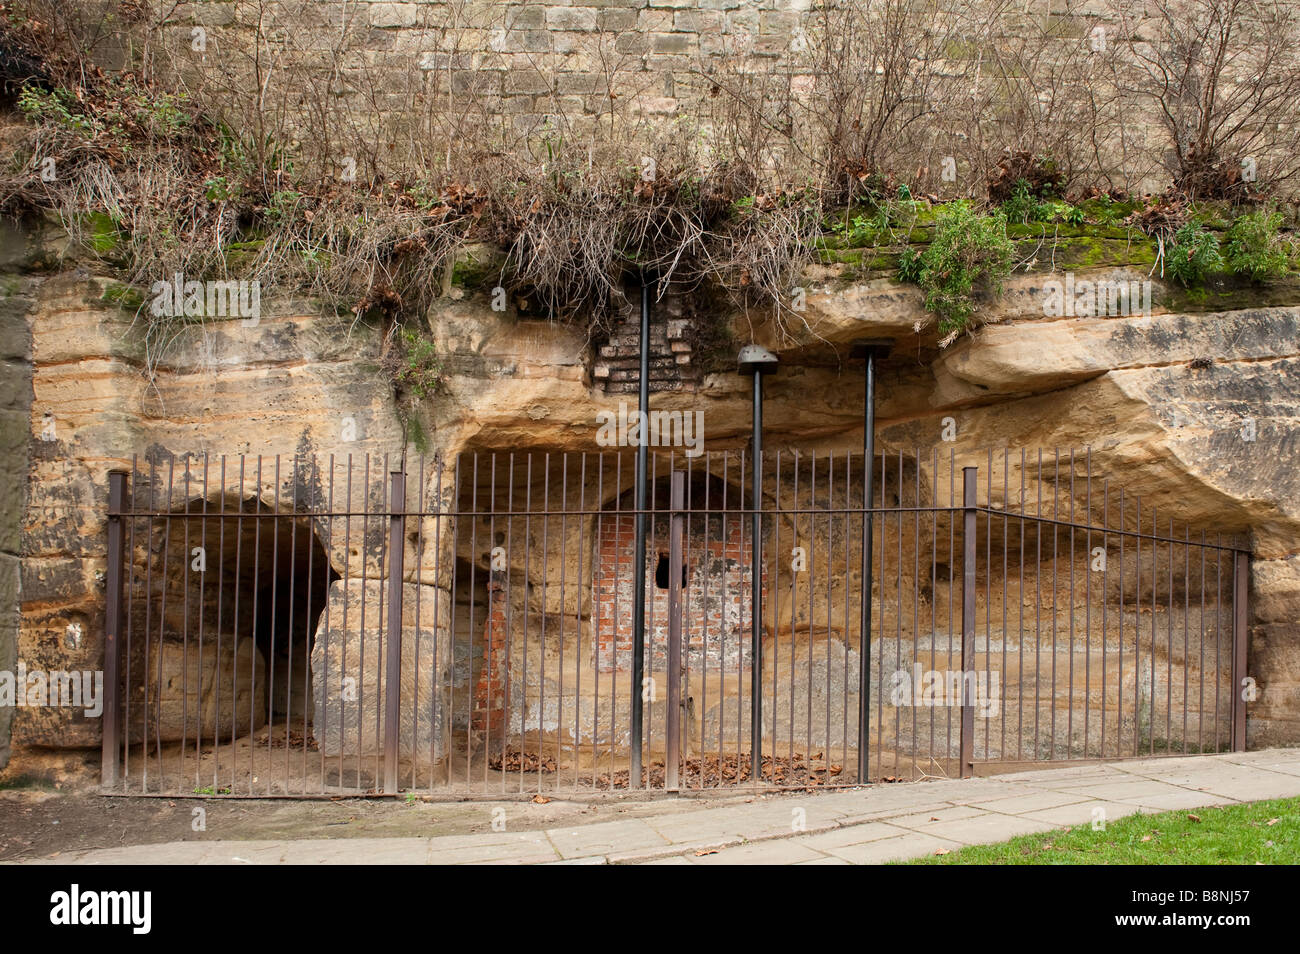 Three metal support props holding up a rock face underneath Nottingham Castle,England,'Great Britain' - Stock Image